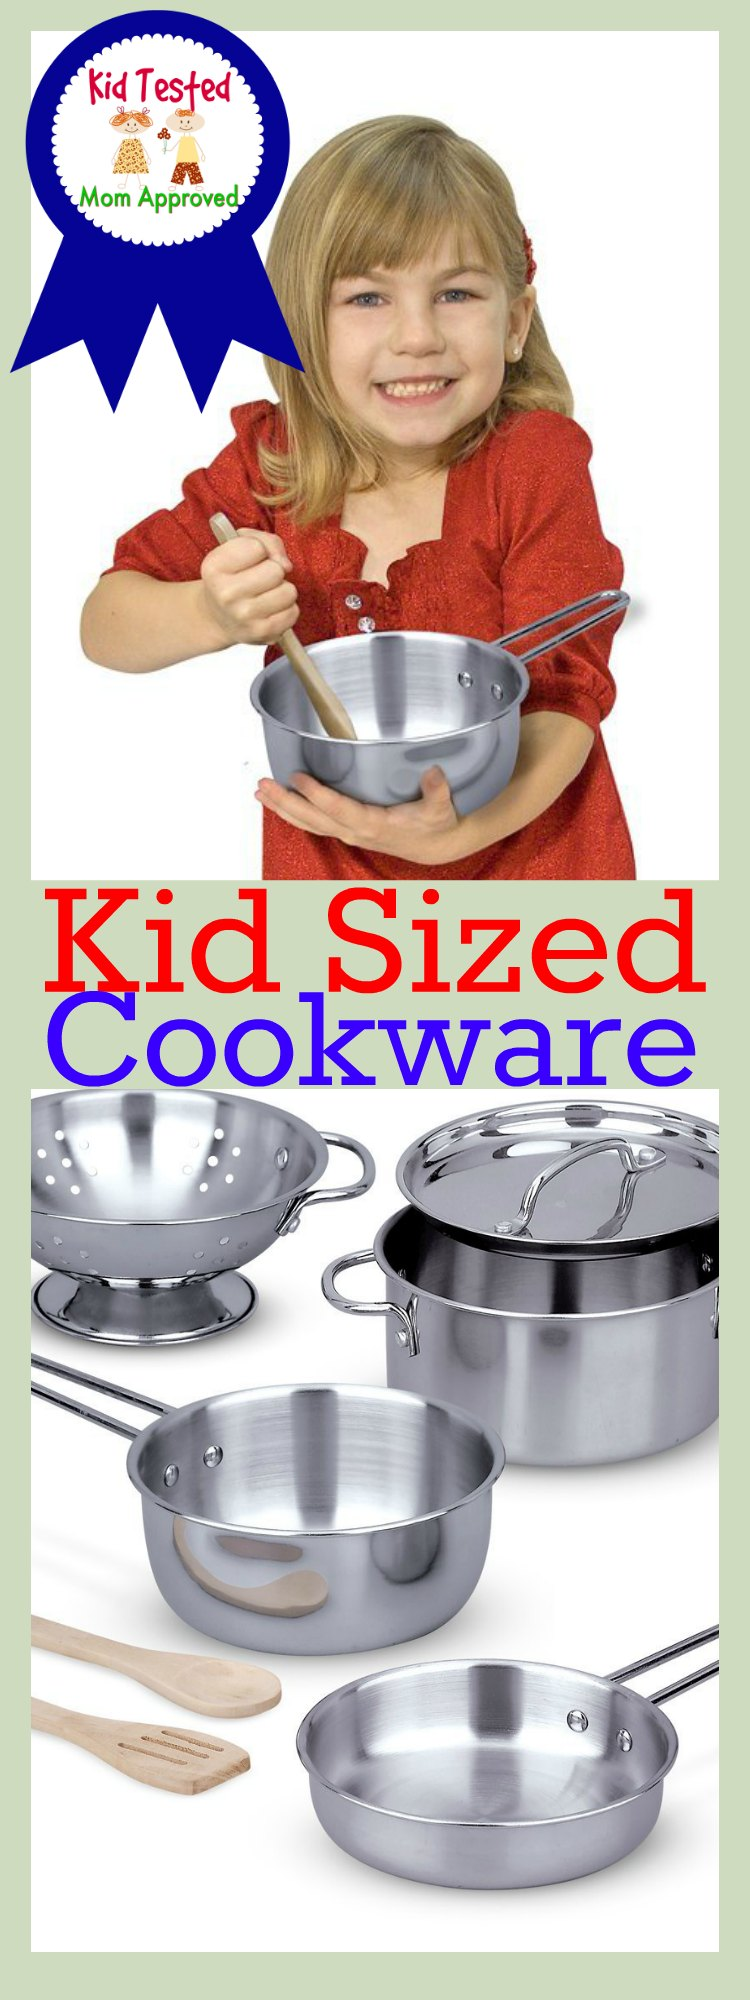 Cook Set for Kids Pots and Pans Play Set